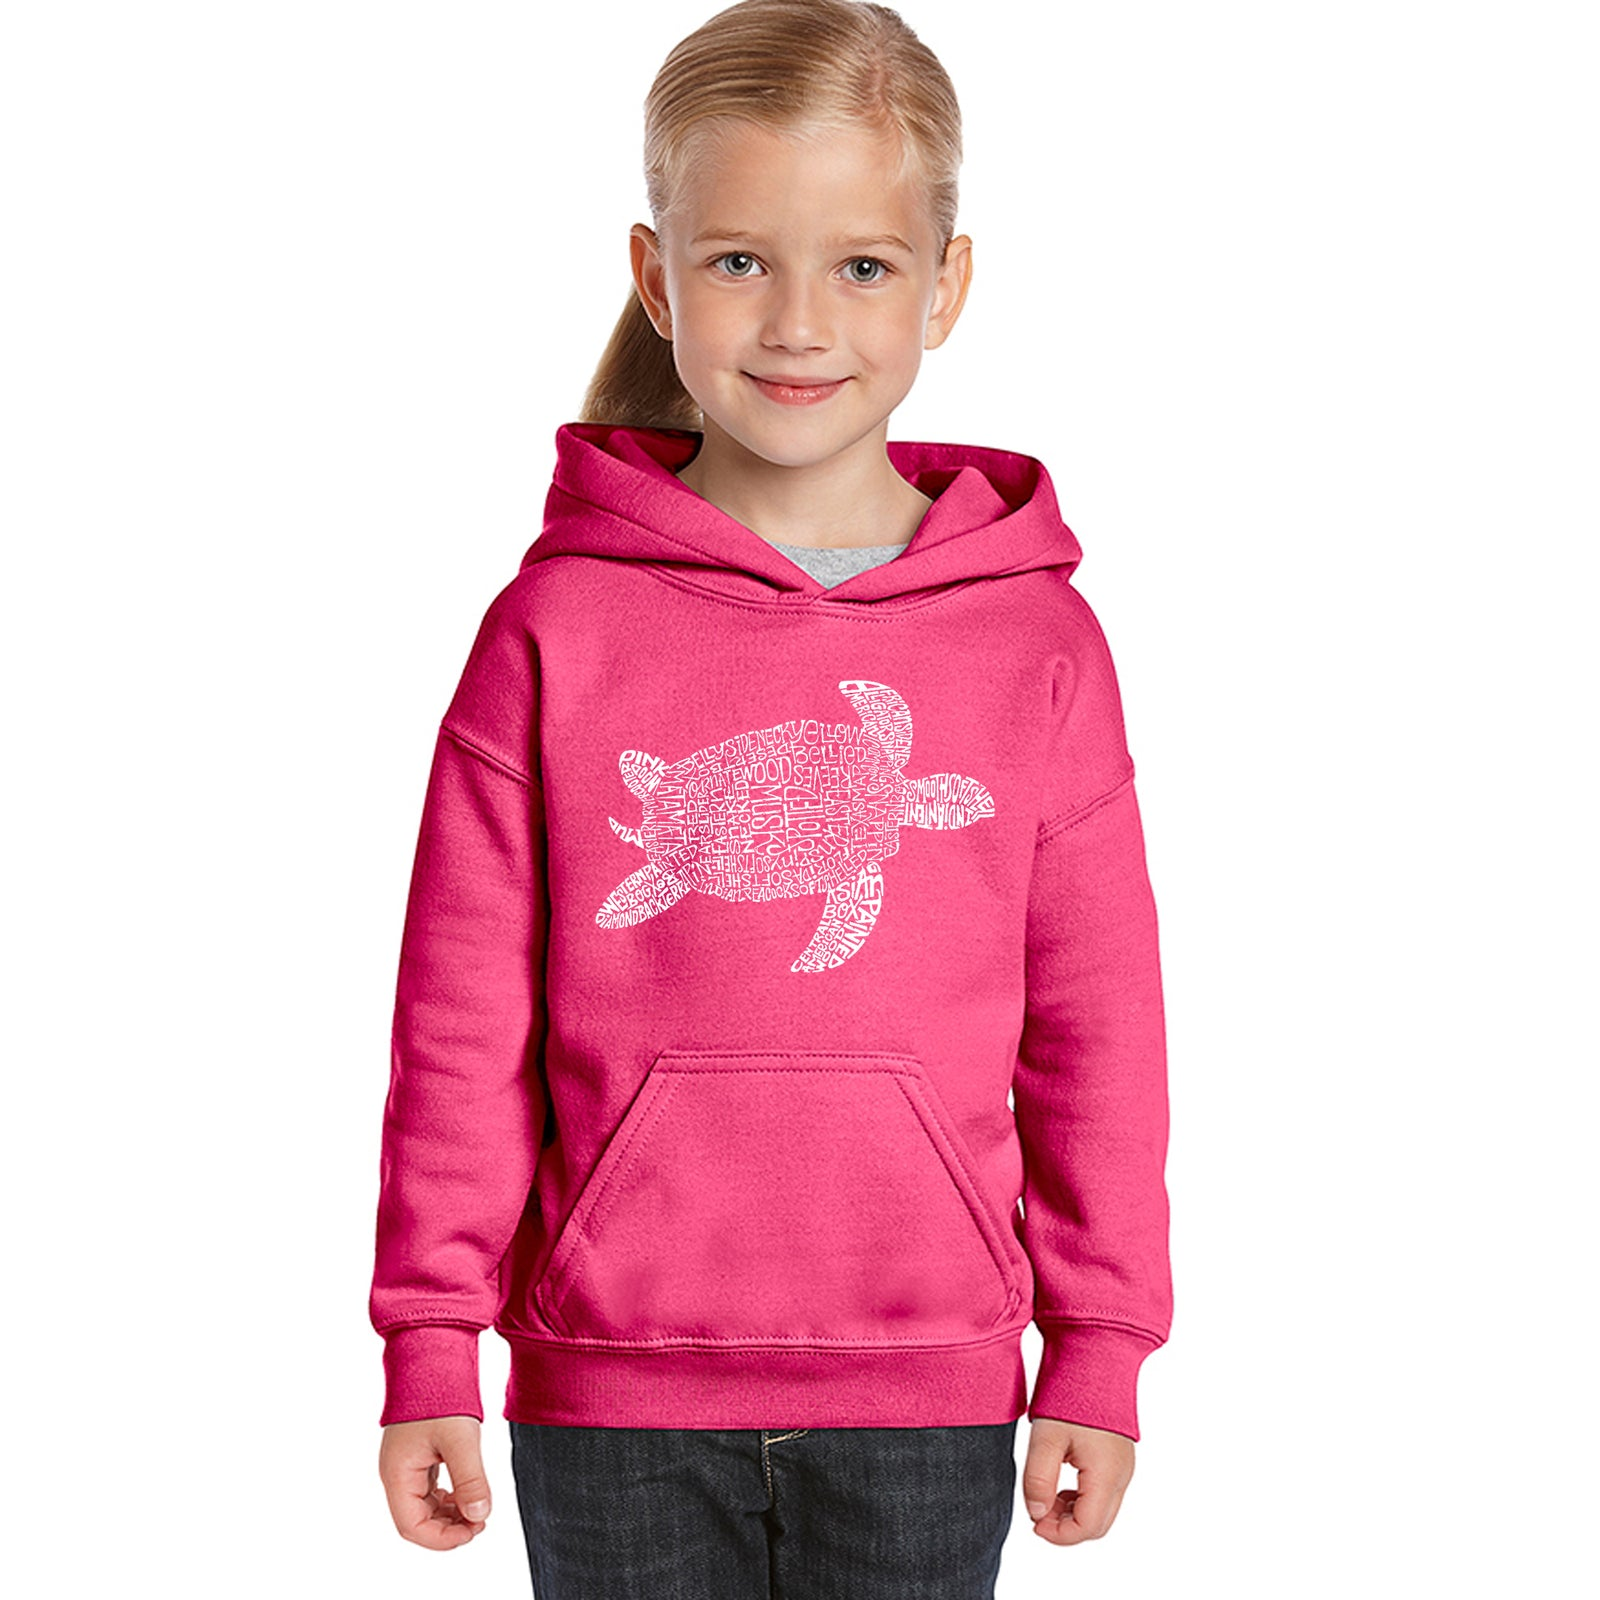 Girl's Word Art Hooded Sweatshirt - Turtle